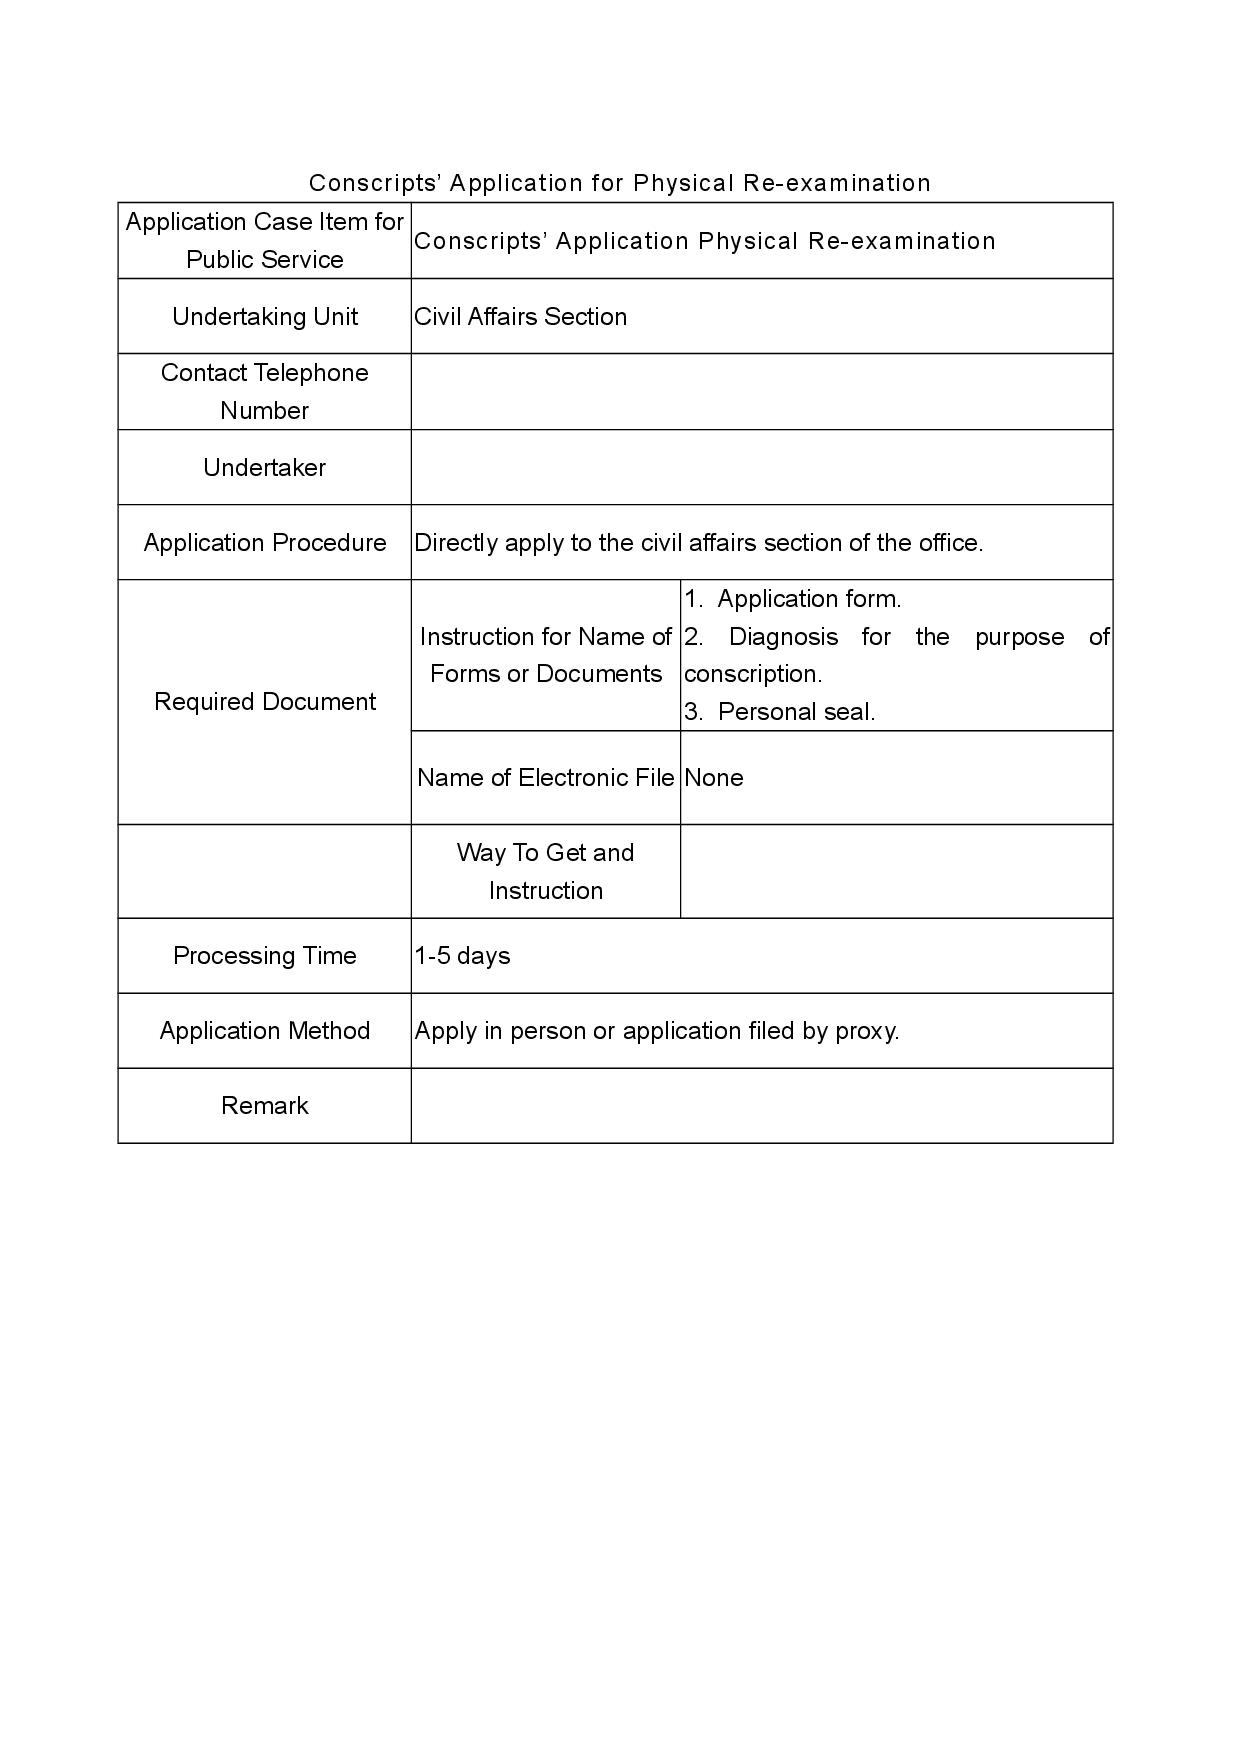 Conscripts' Application for Physical Re-examination